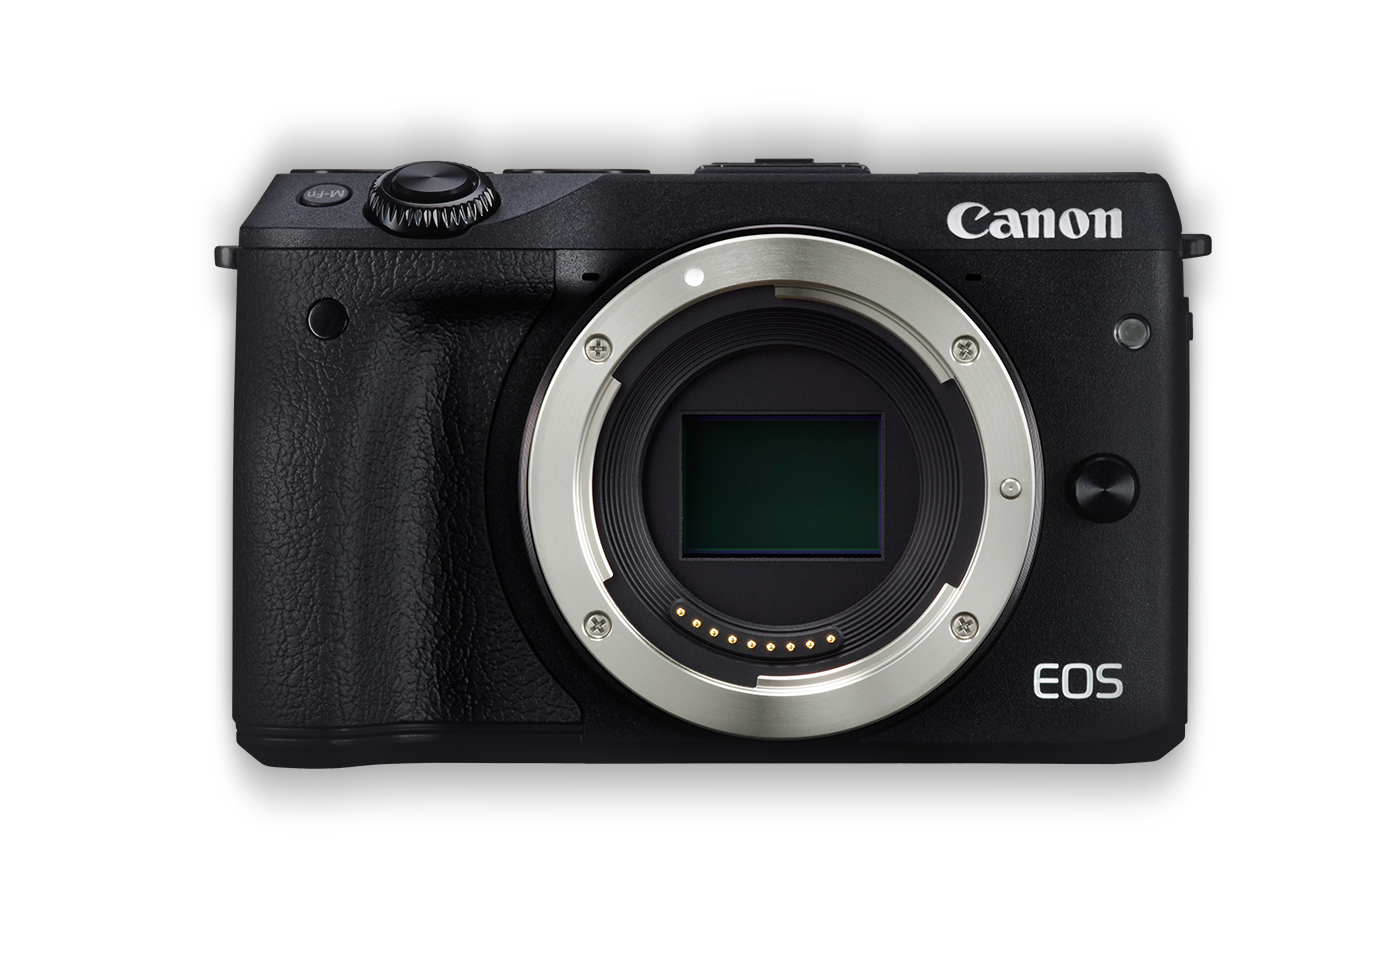 Front of Canon EOS M3 compact camera